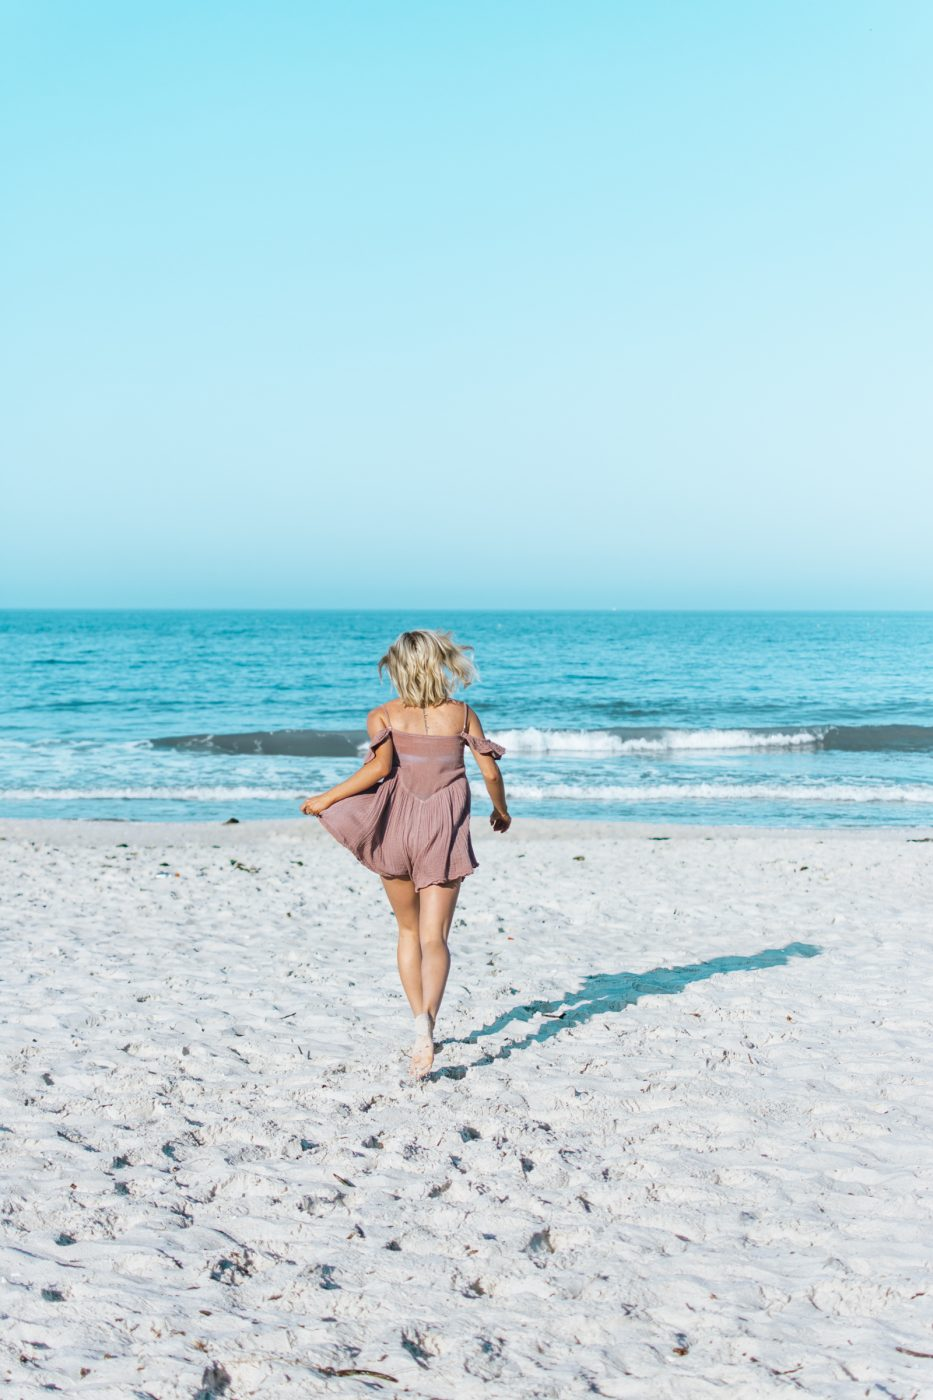 Jenny of Sweet Teal running on beach